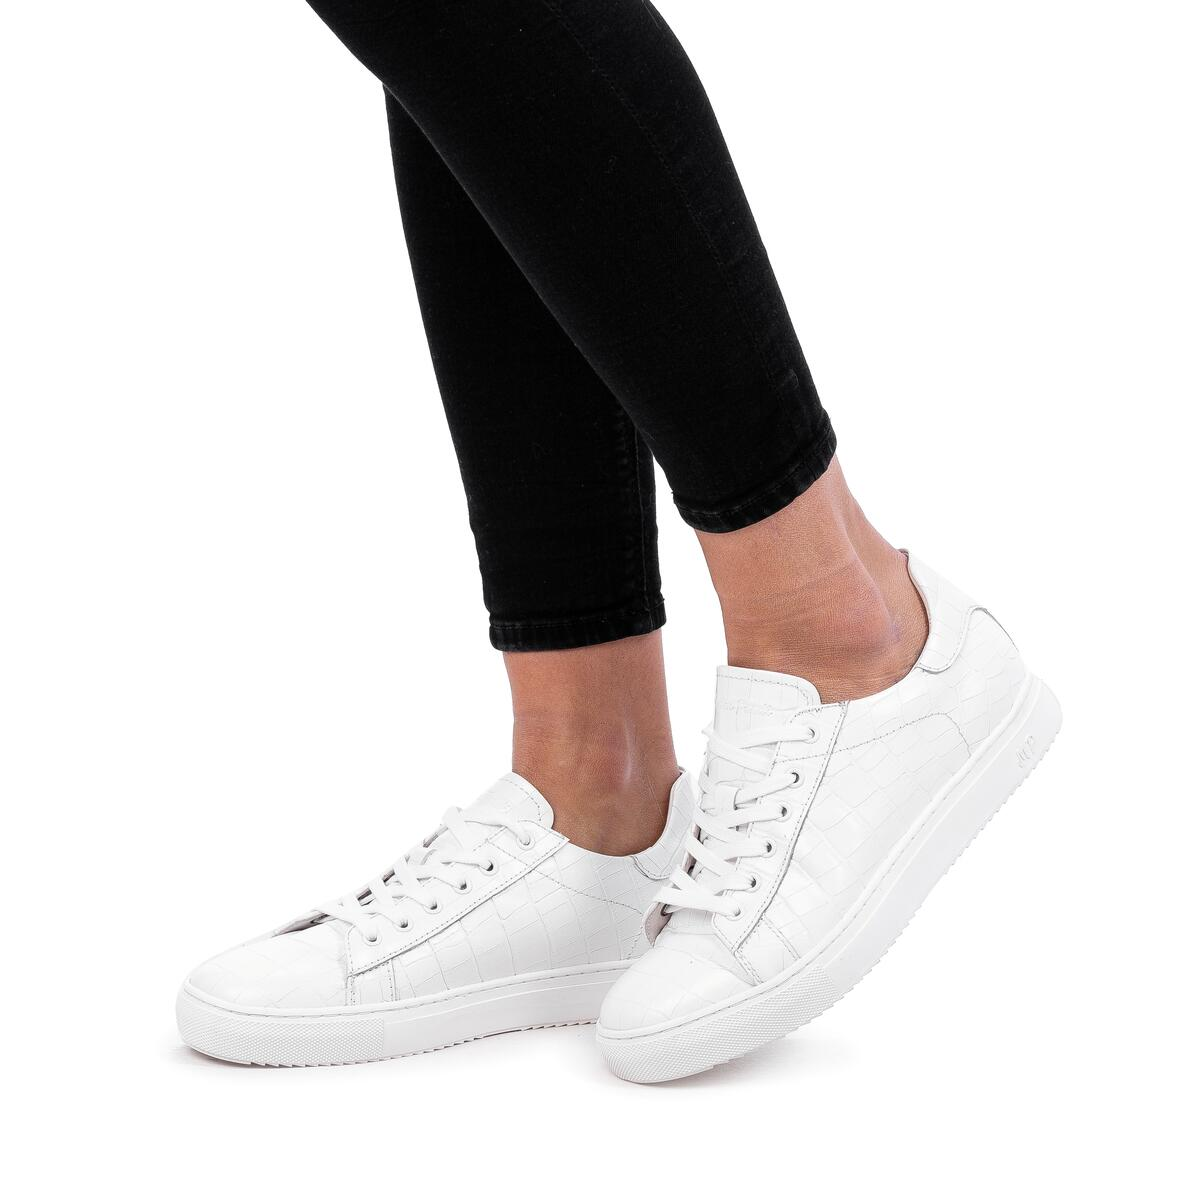 Maxim Pardi La Neve Low Top Genuine Leather Sneakers. Fashion Sneakers, Lightweight Classic Casual Shoes , Unisex